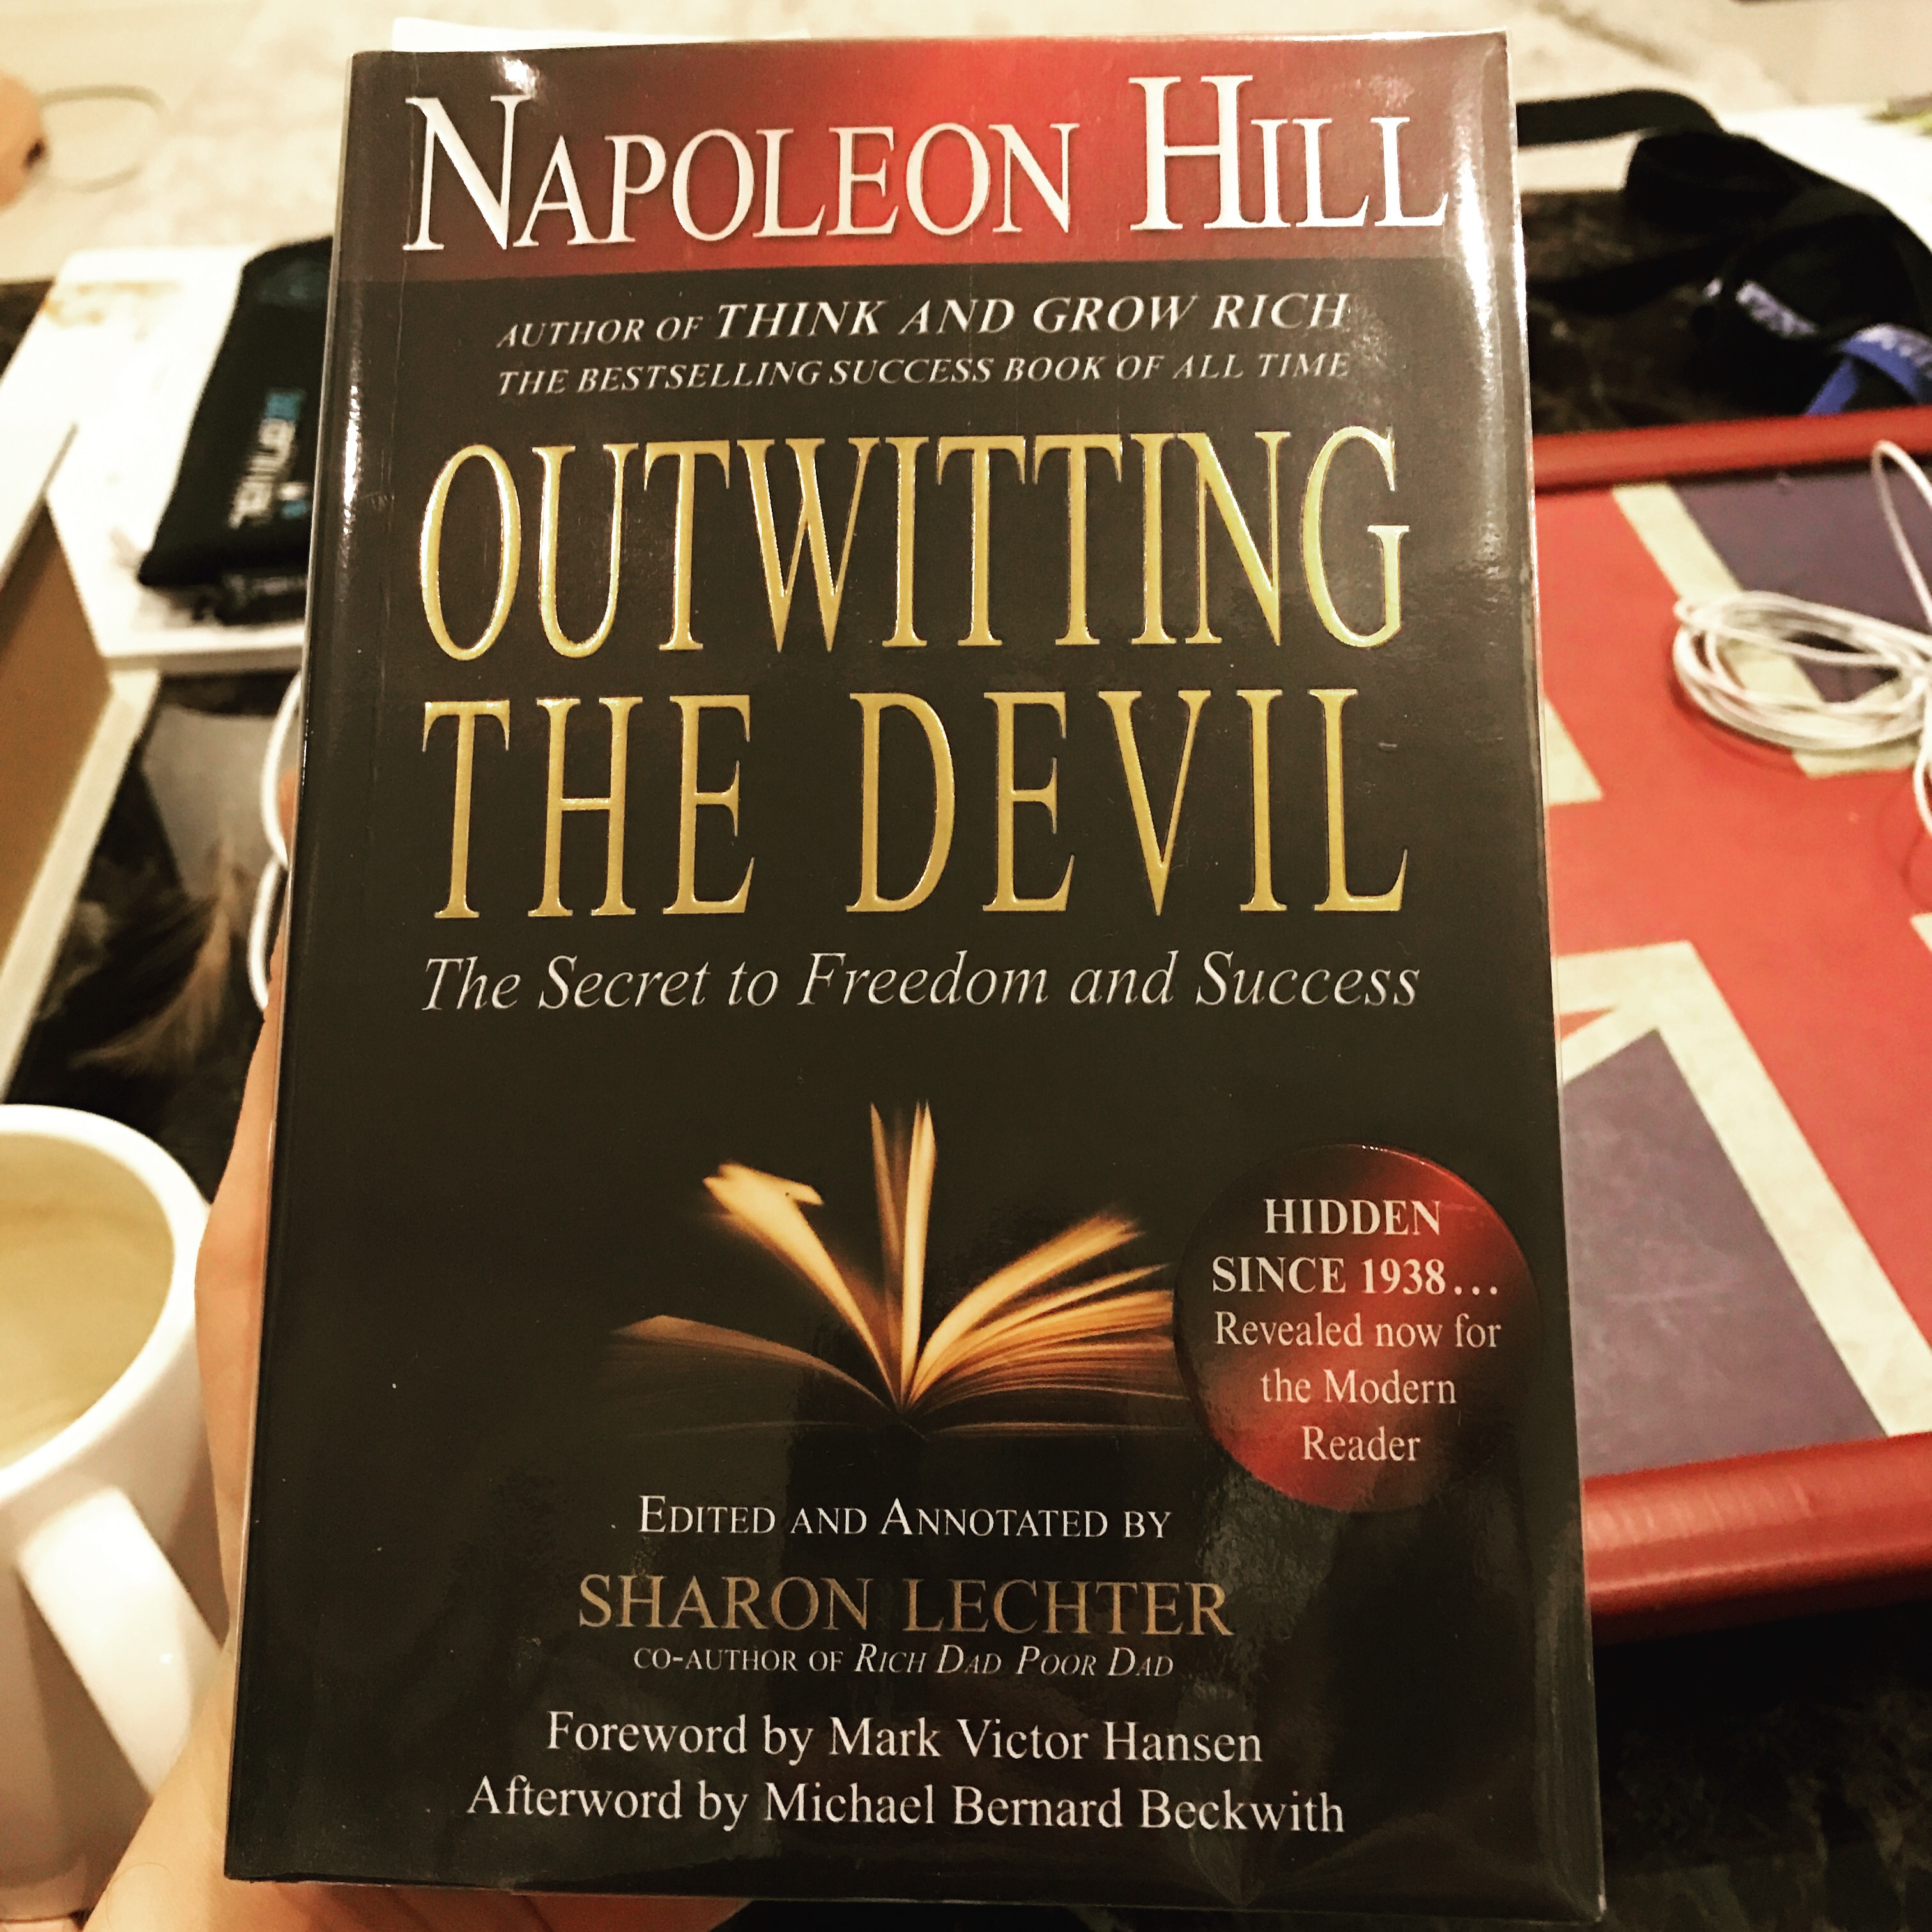 Outwitting The Devil Quotes Fair Outwitting The Devil Napolean Hill's Suggestions For Teachers